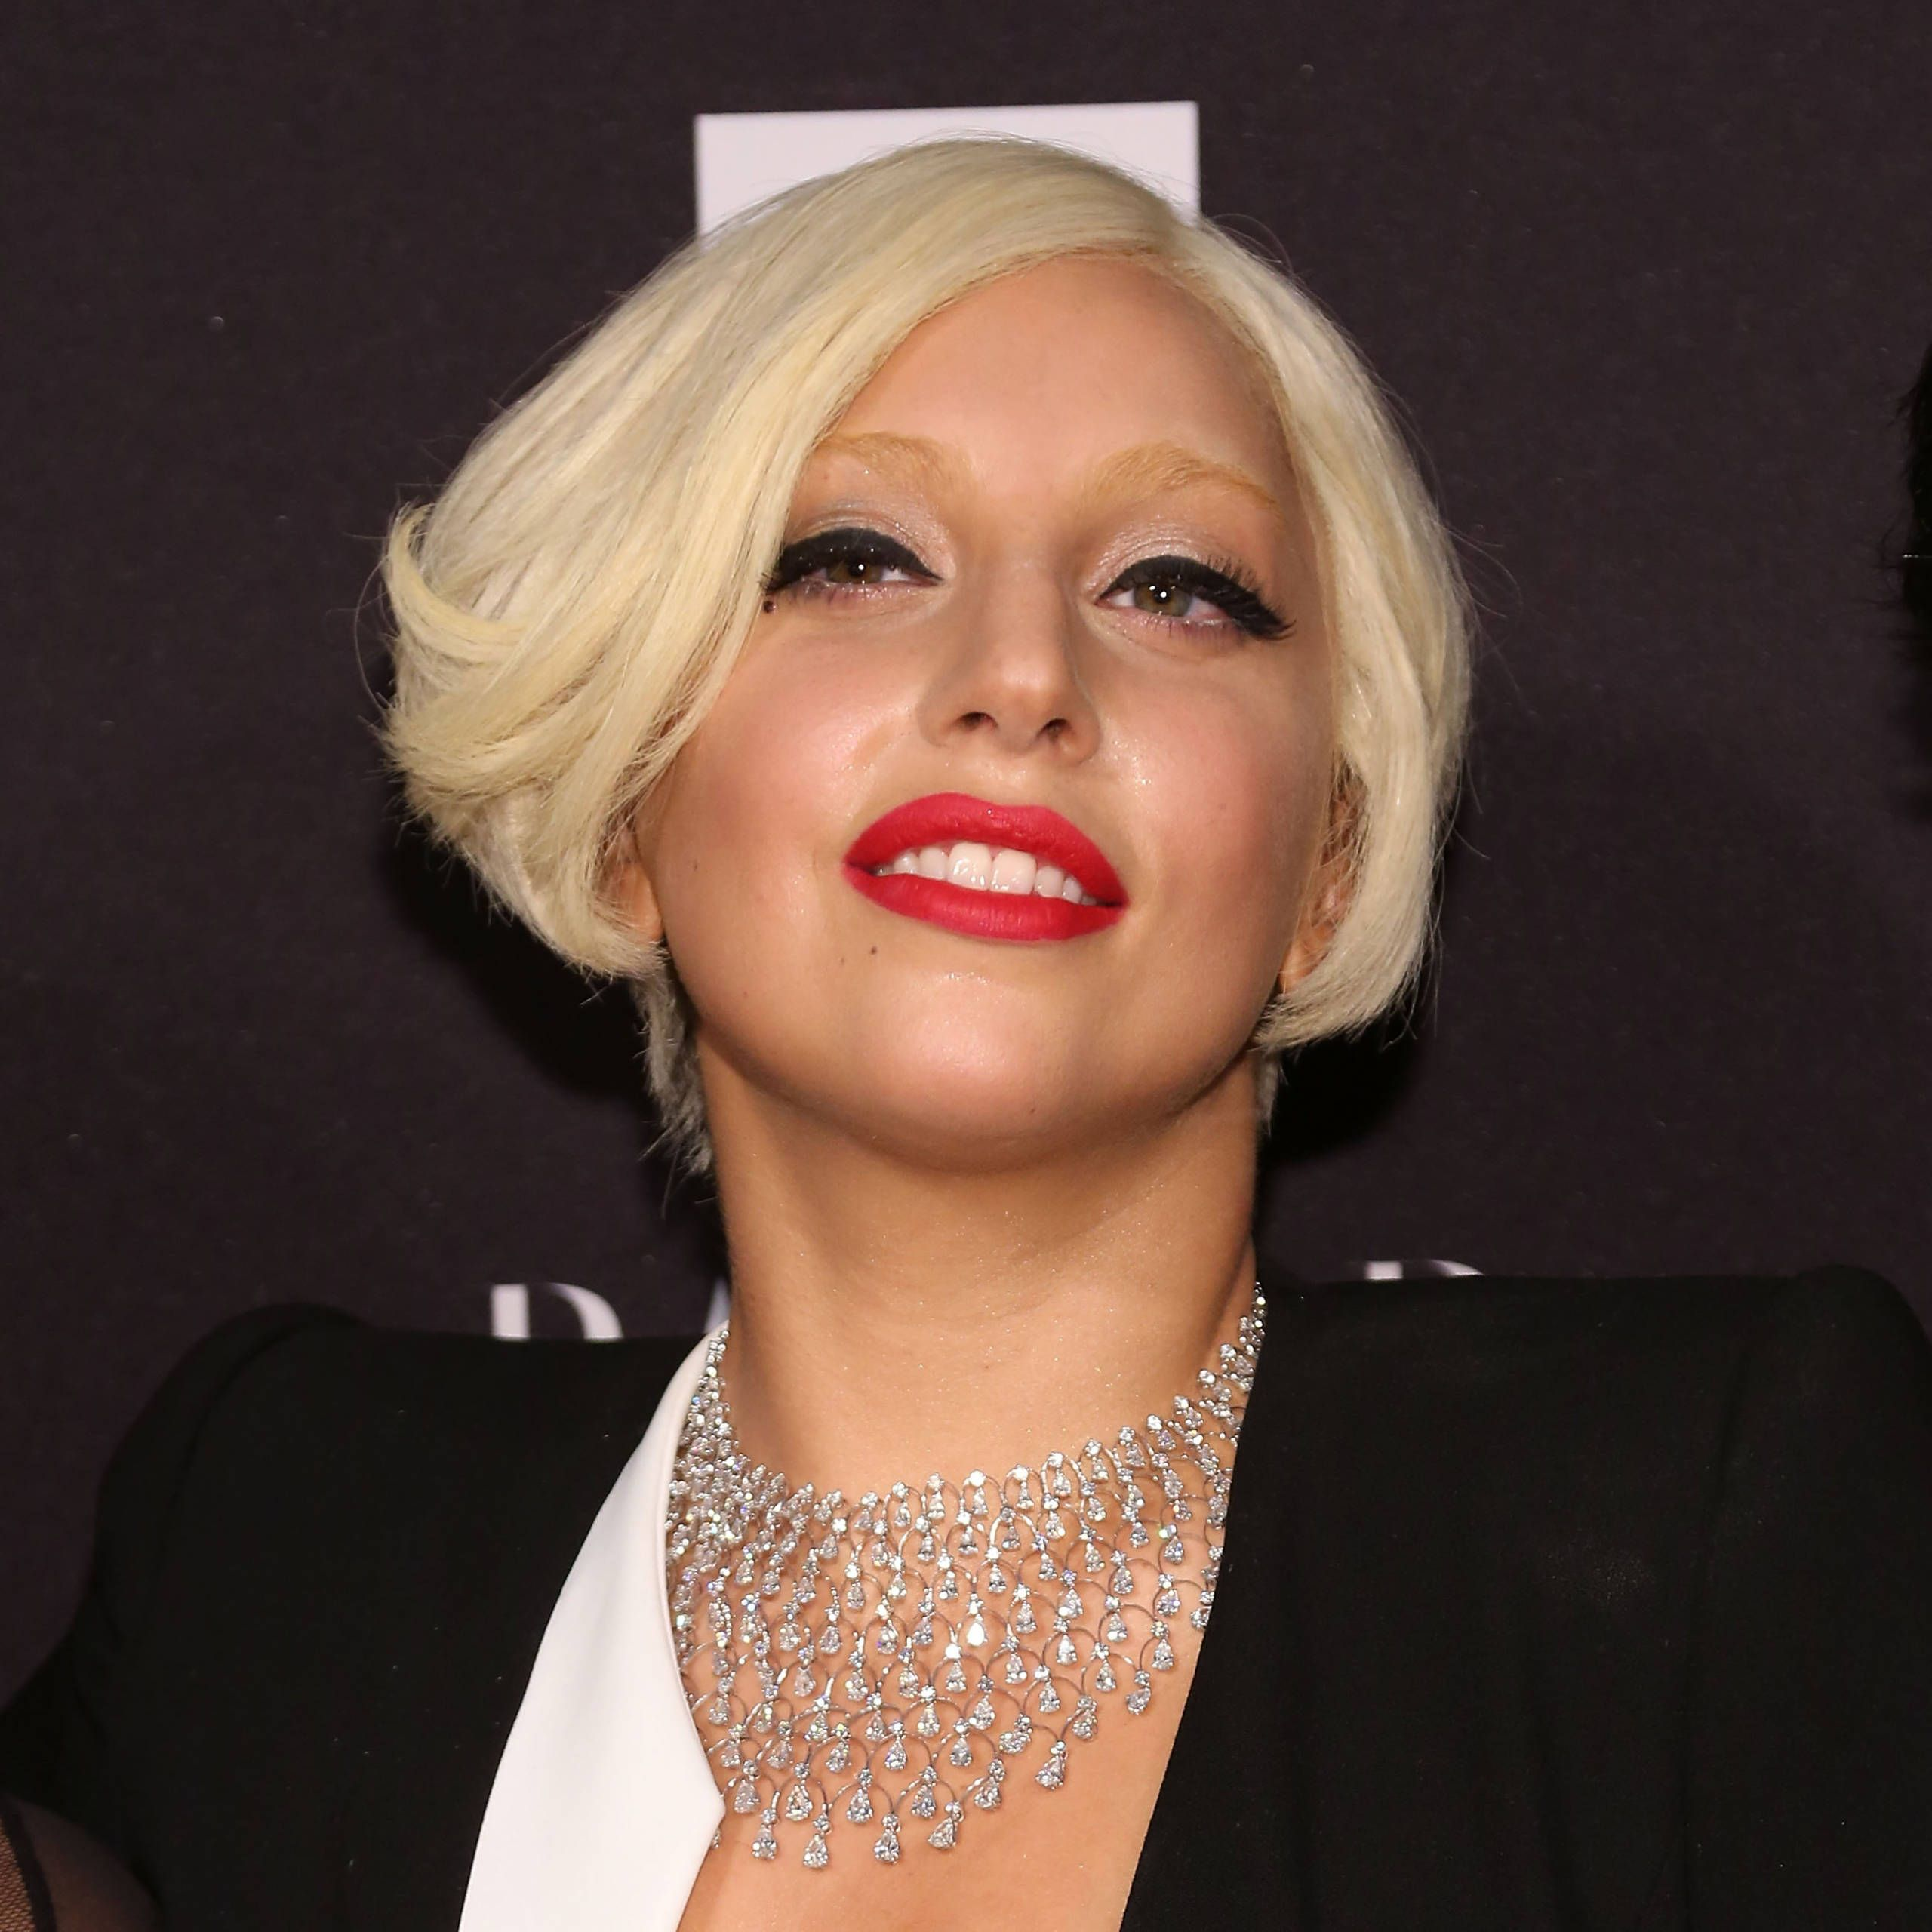 Lady Gaga at  the ICONS event thrown by the worldwide editors of Harper's BAZAAR, presented by Infor and Samsung Galaxy.